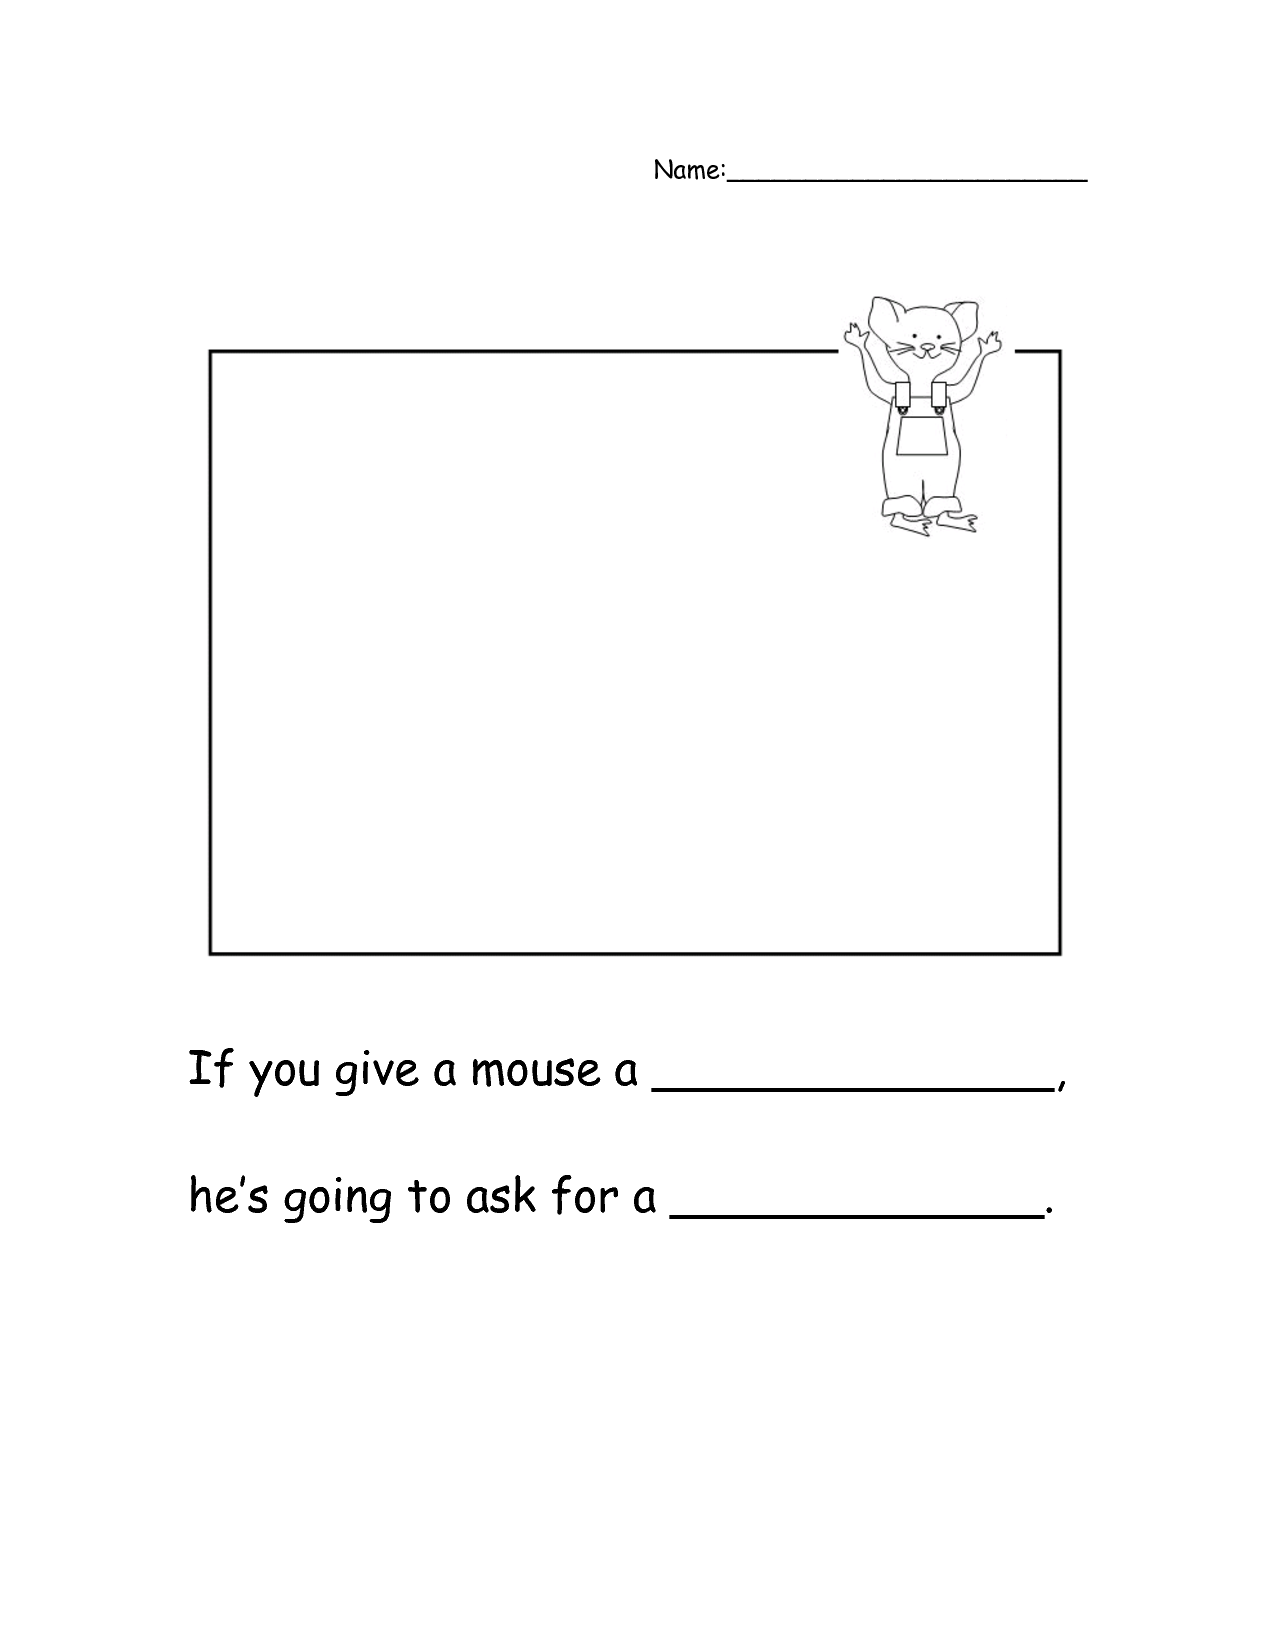 If You Give A Mouse A Cookie Printable Worksheets